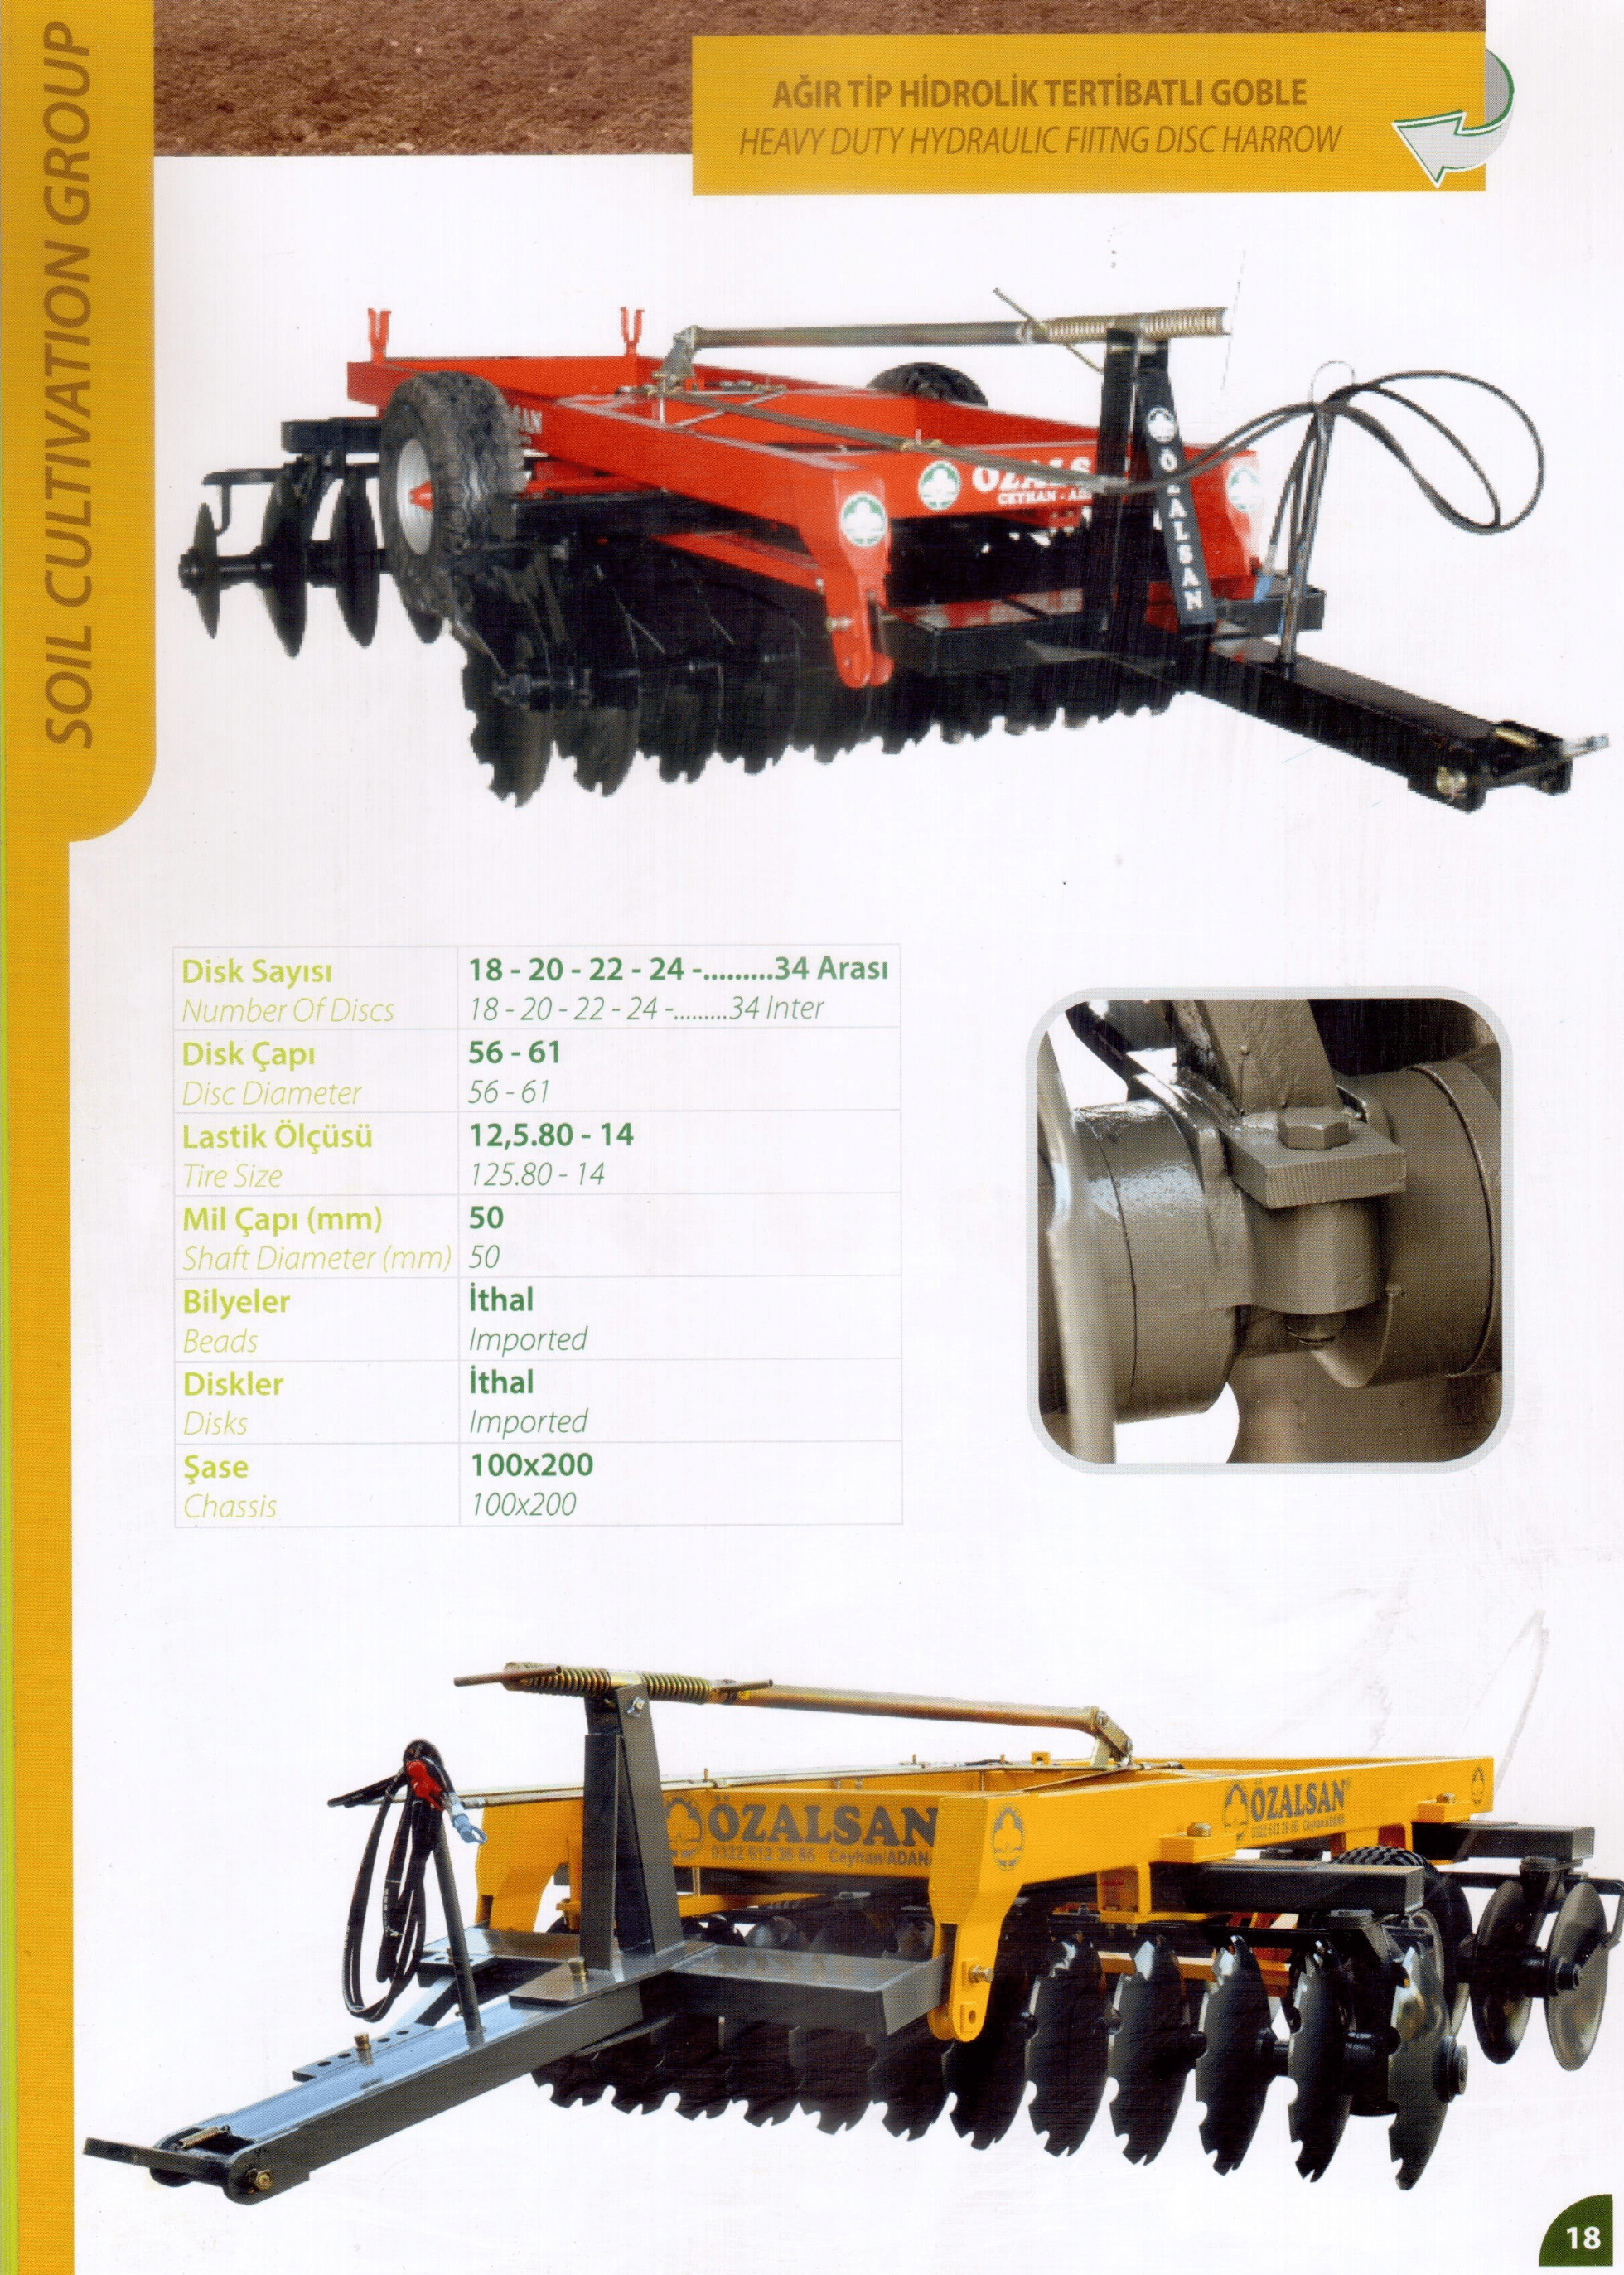 AĞIR TİP HİDROLİK TERTİBATLI GOBLE (HEAVY DUTY HYDRAULIC FIITNG DISC HARROW)